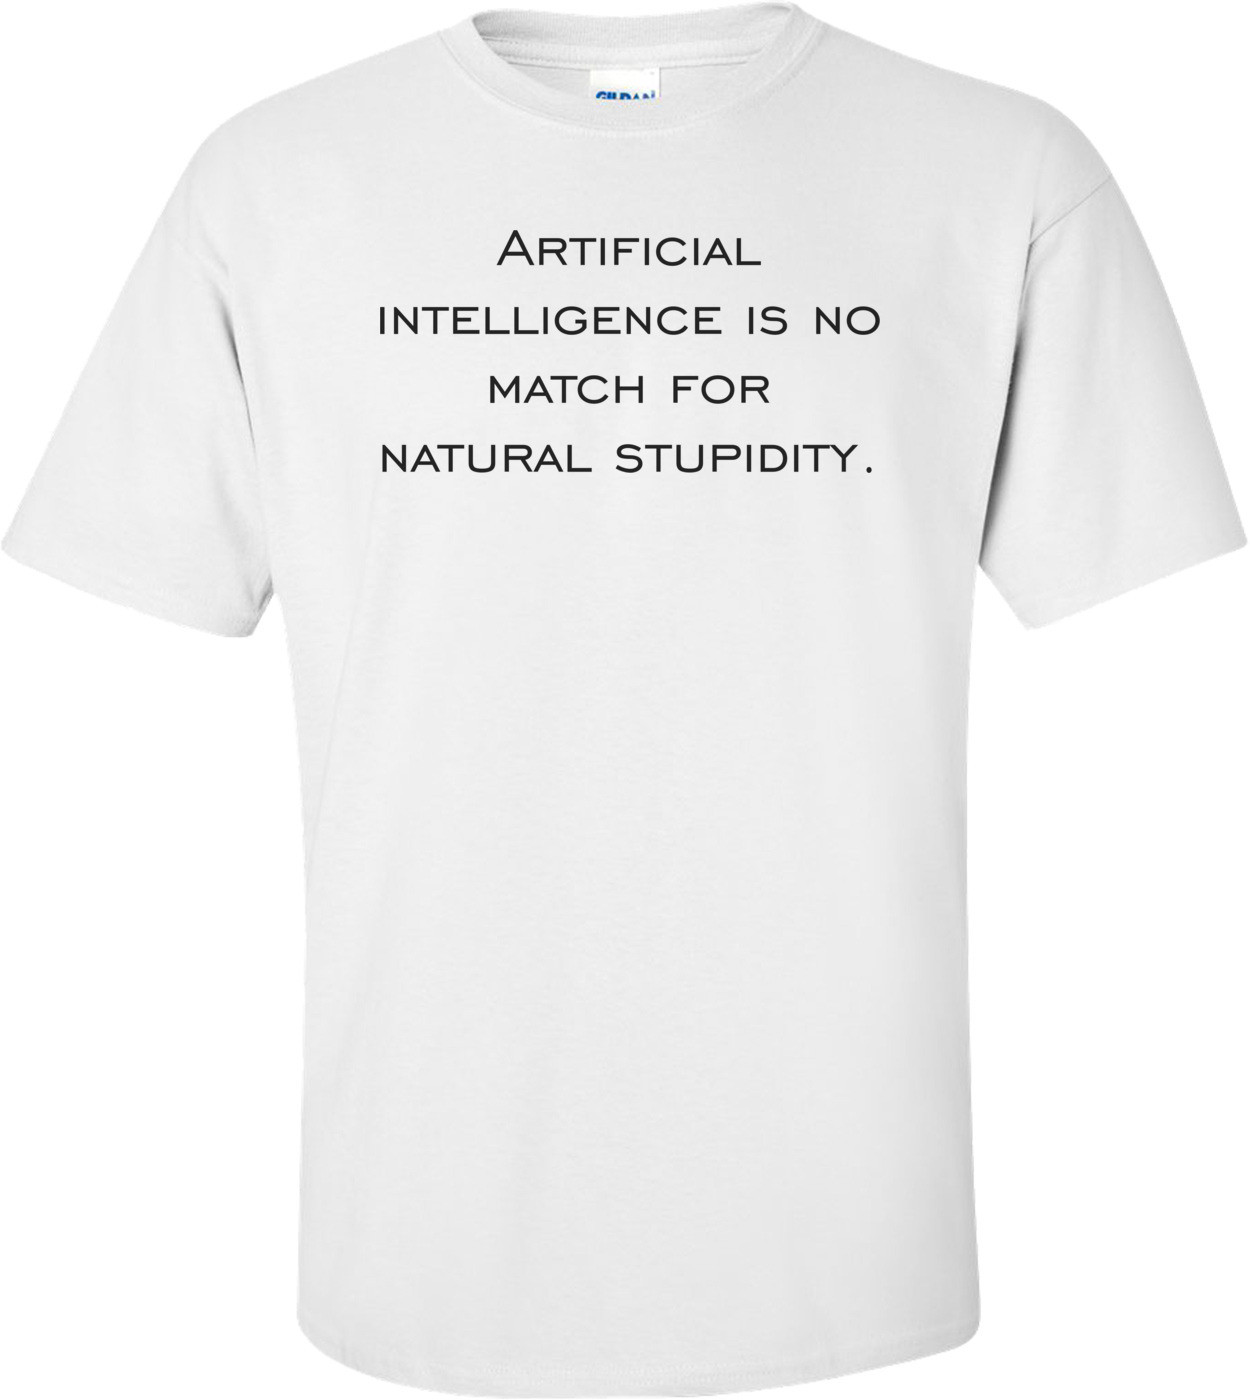 Artificial intelligence is no match for natural stupidity. Shirt